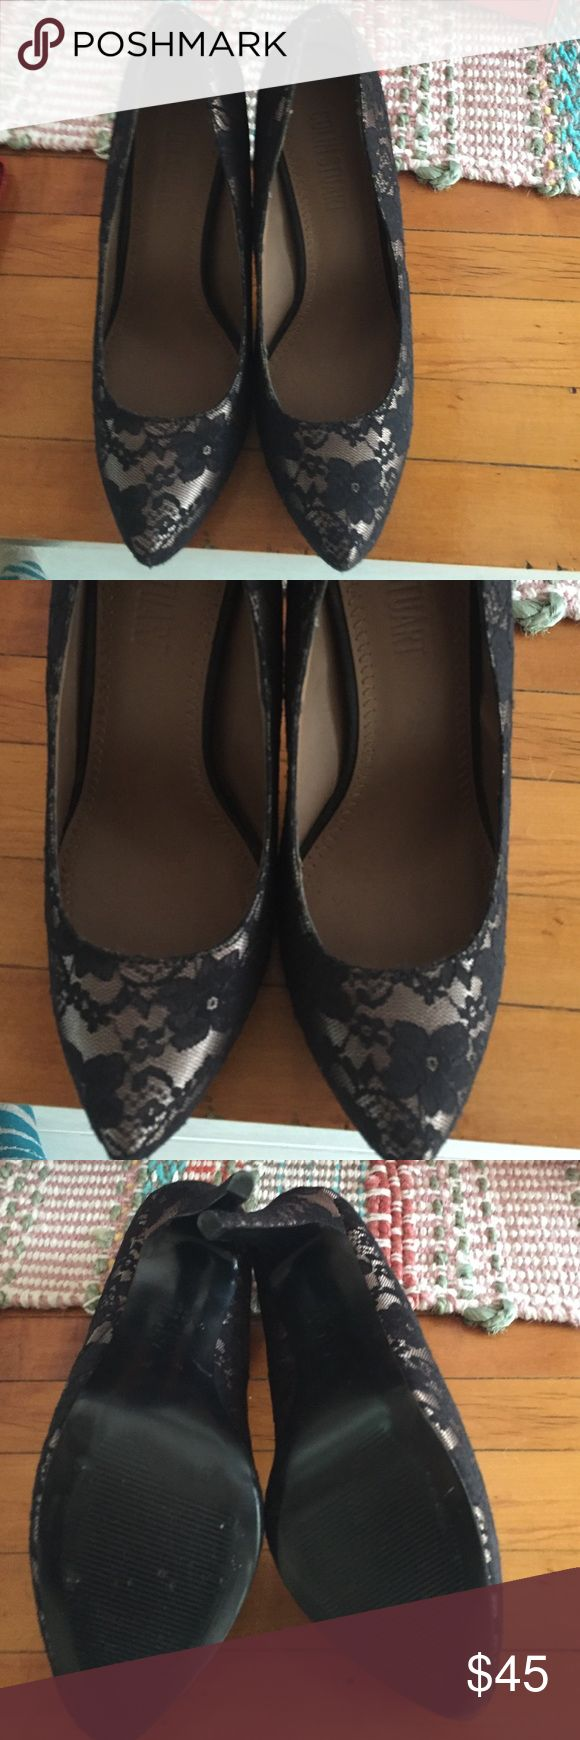 Colin Stuart black lace stiletto pump Colin Stuart black lace stiletto pump size 8. They are more comfortable than they look. I bought them for a wedding and since becoming a momma have no use for them at this point. Clearing out my closet and I know someone else will love them too!! Colin Stuart Shoes Heels